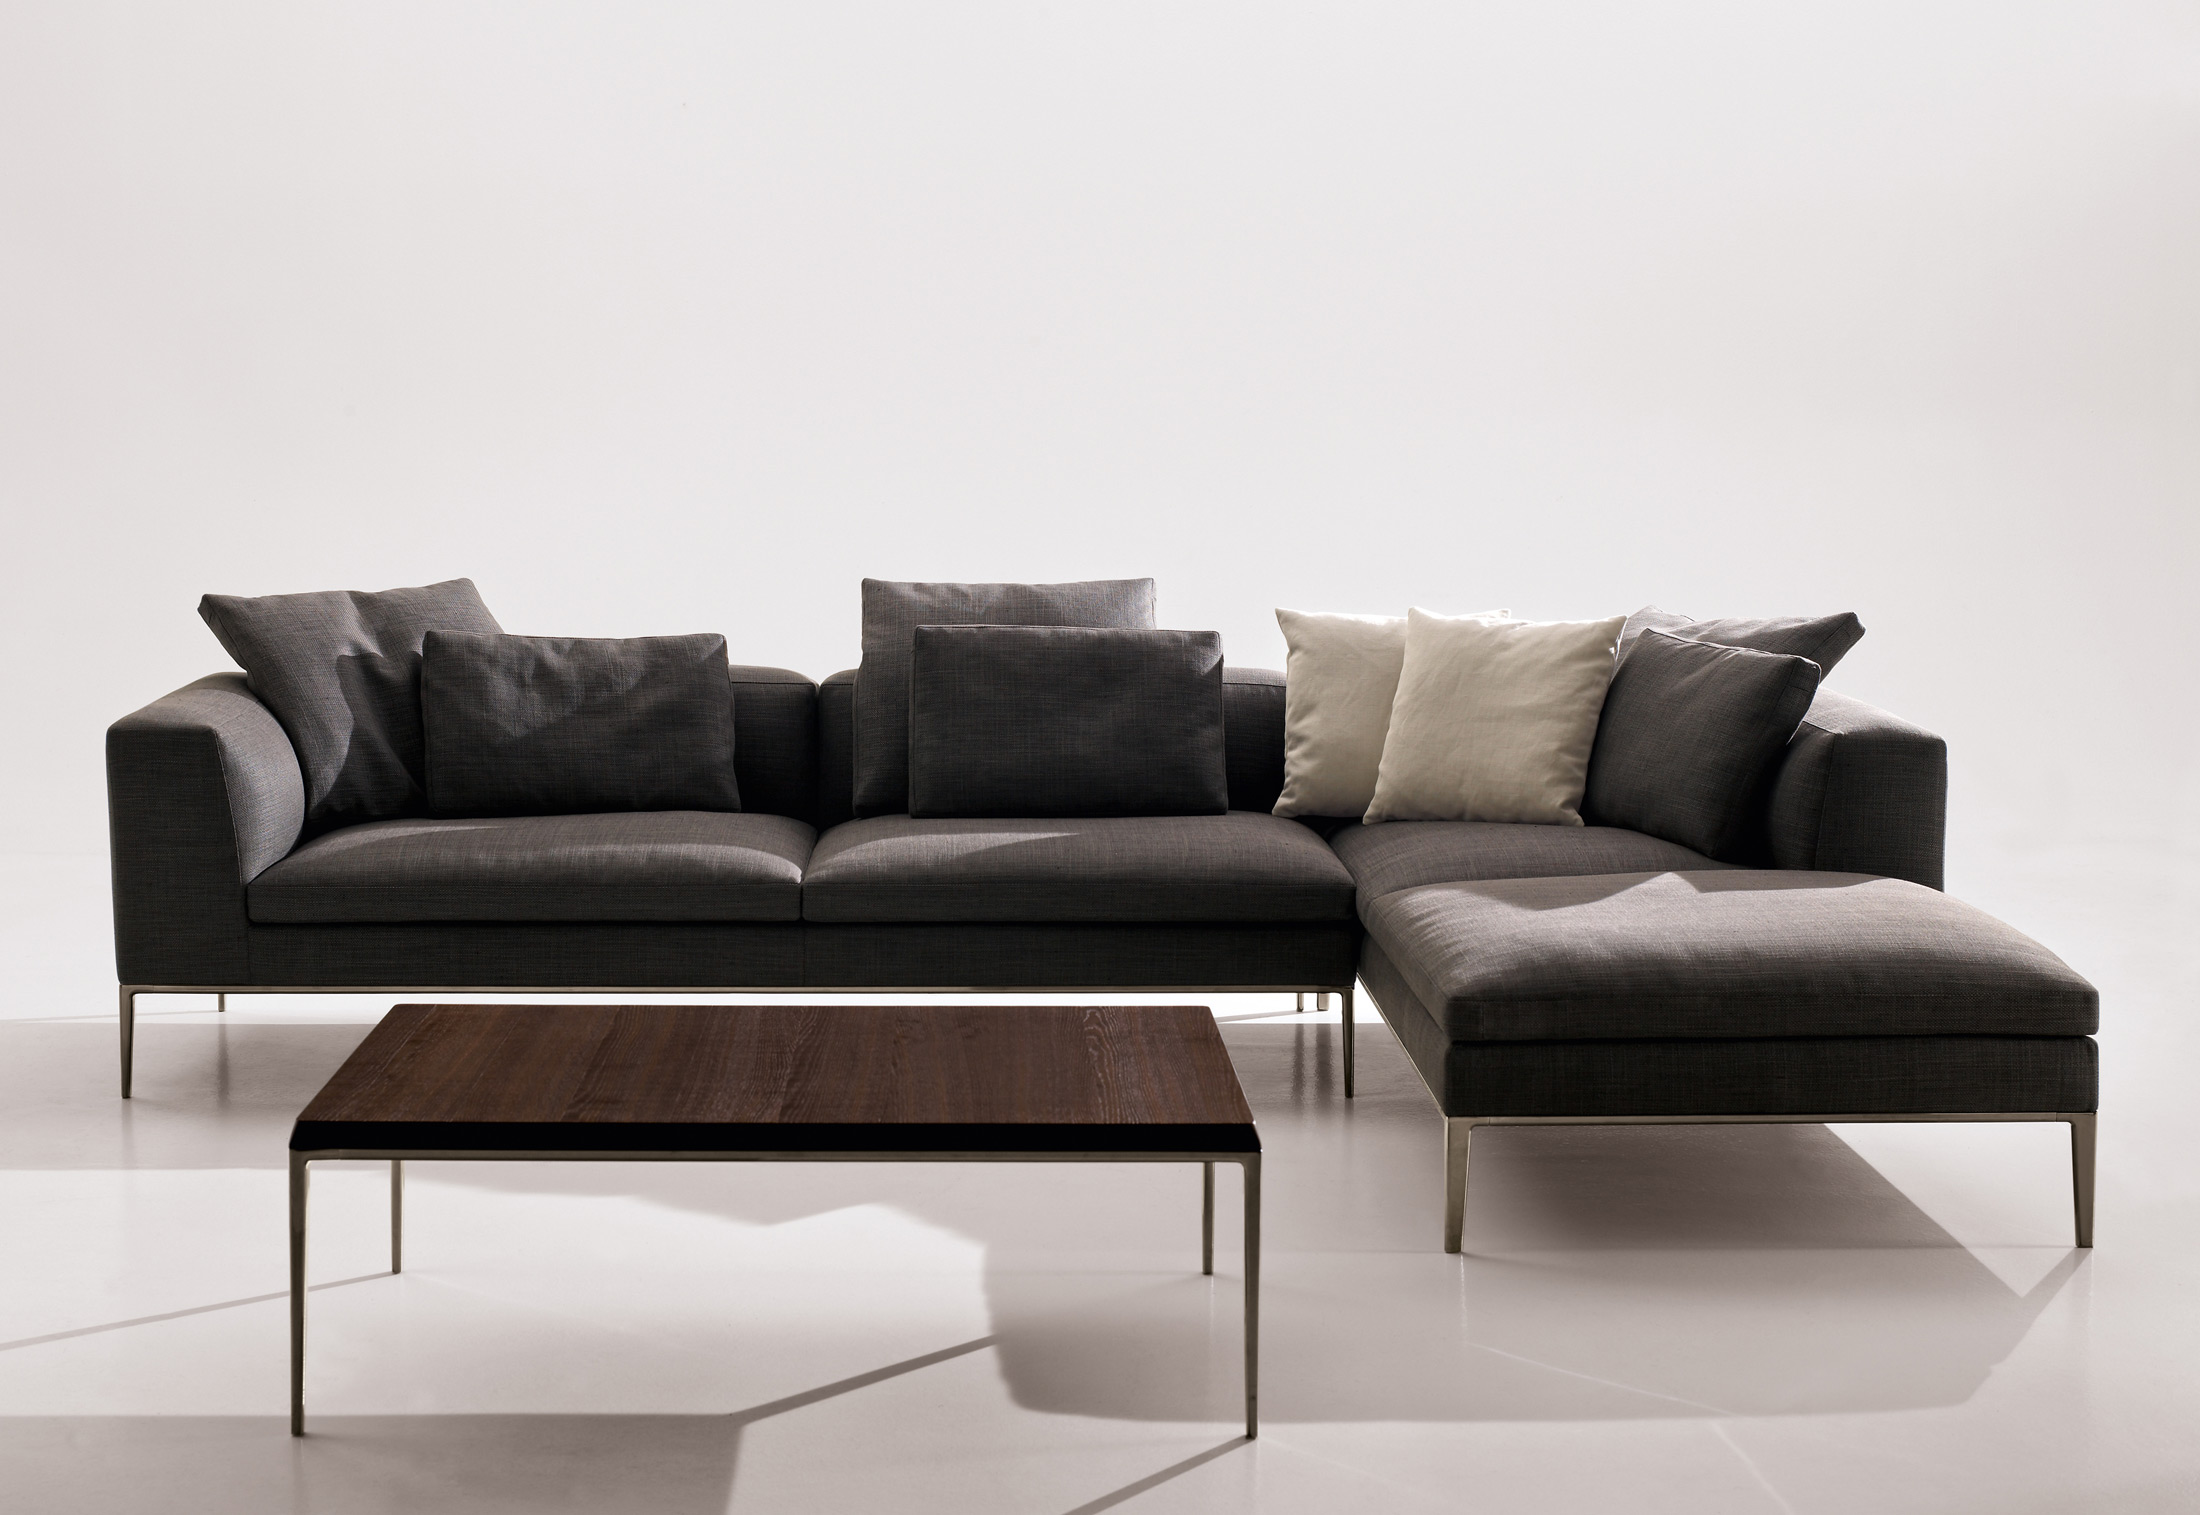 MICHEL Sofa by B&B Italia